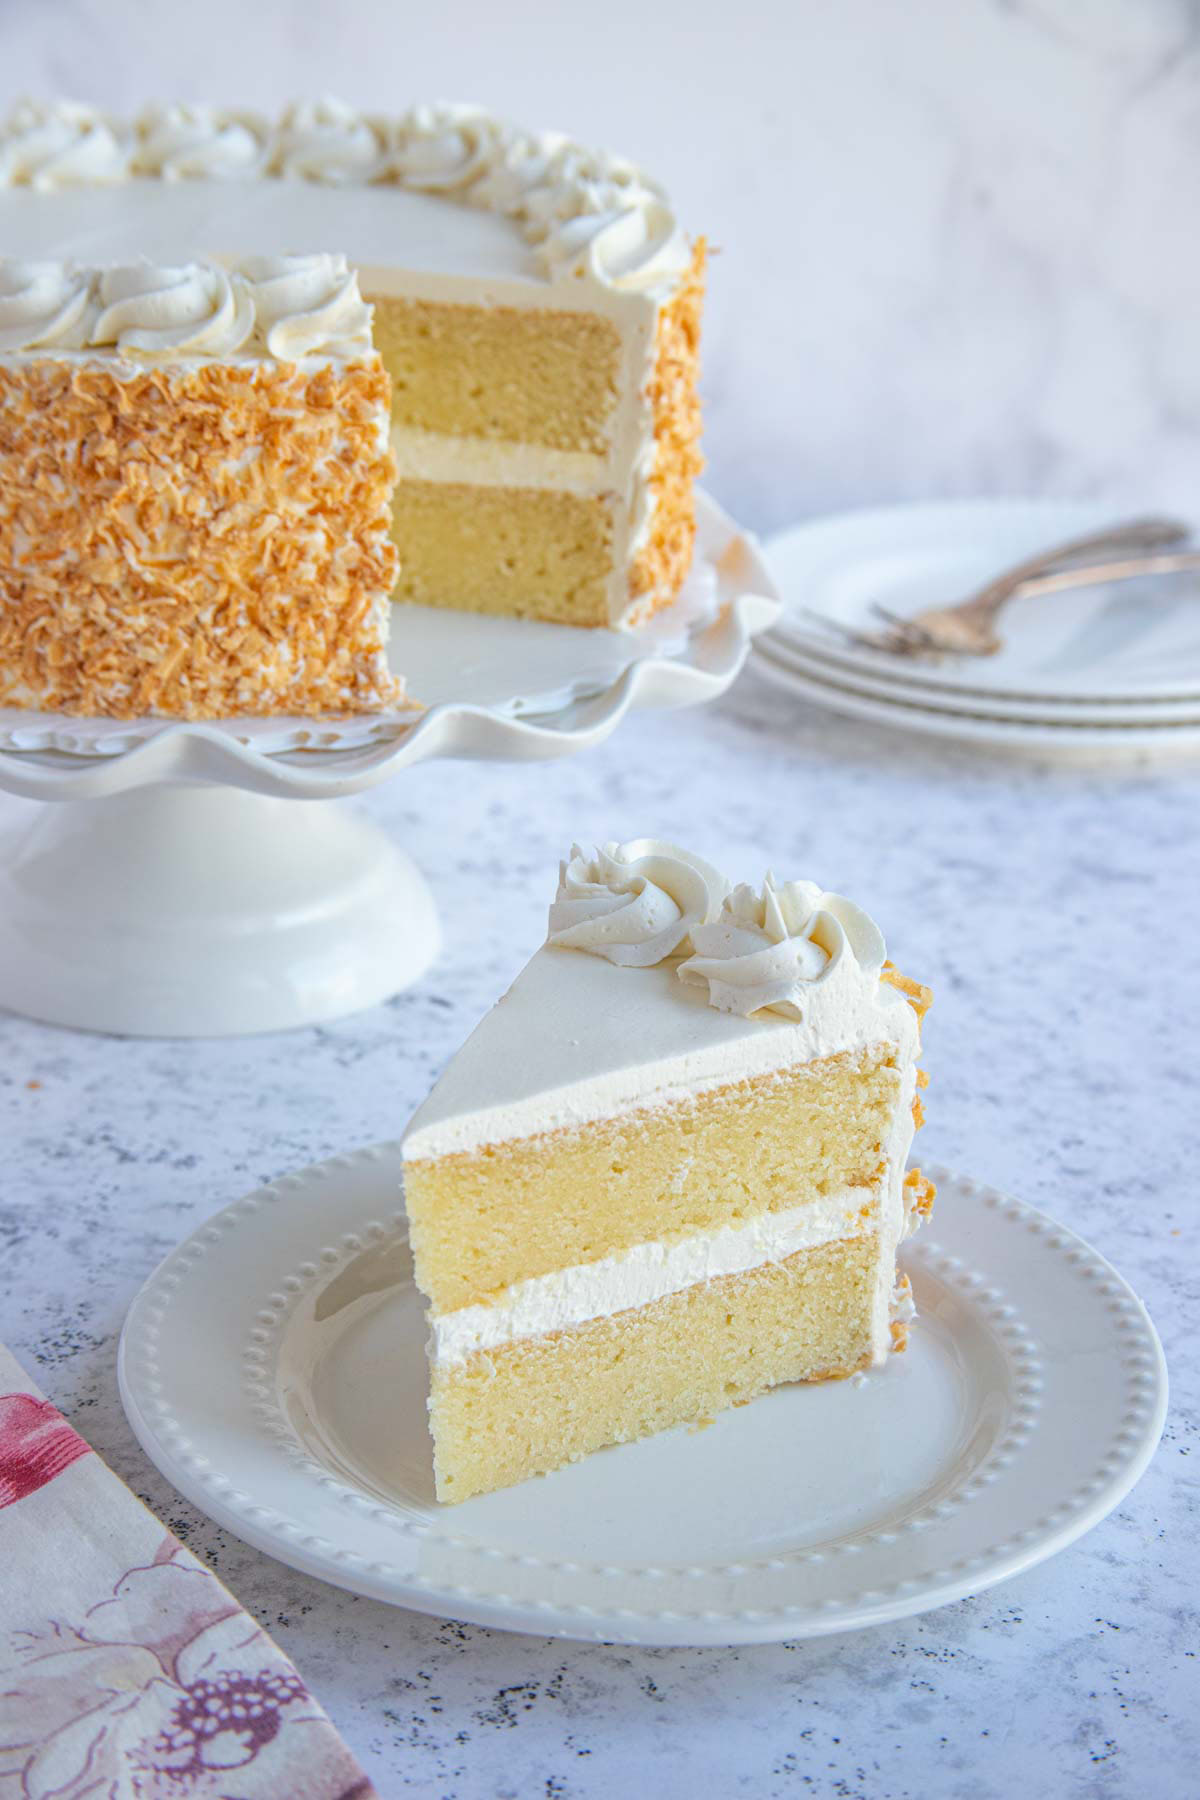 Coconut Layer Cake with Toasted Coconut Frosting on cake stand.  A cake slice on a white plate is in front of the cake